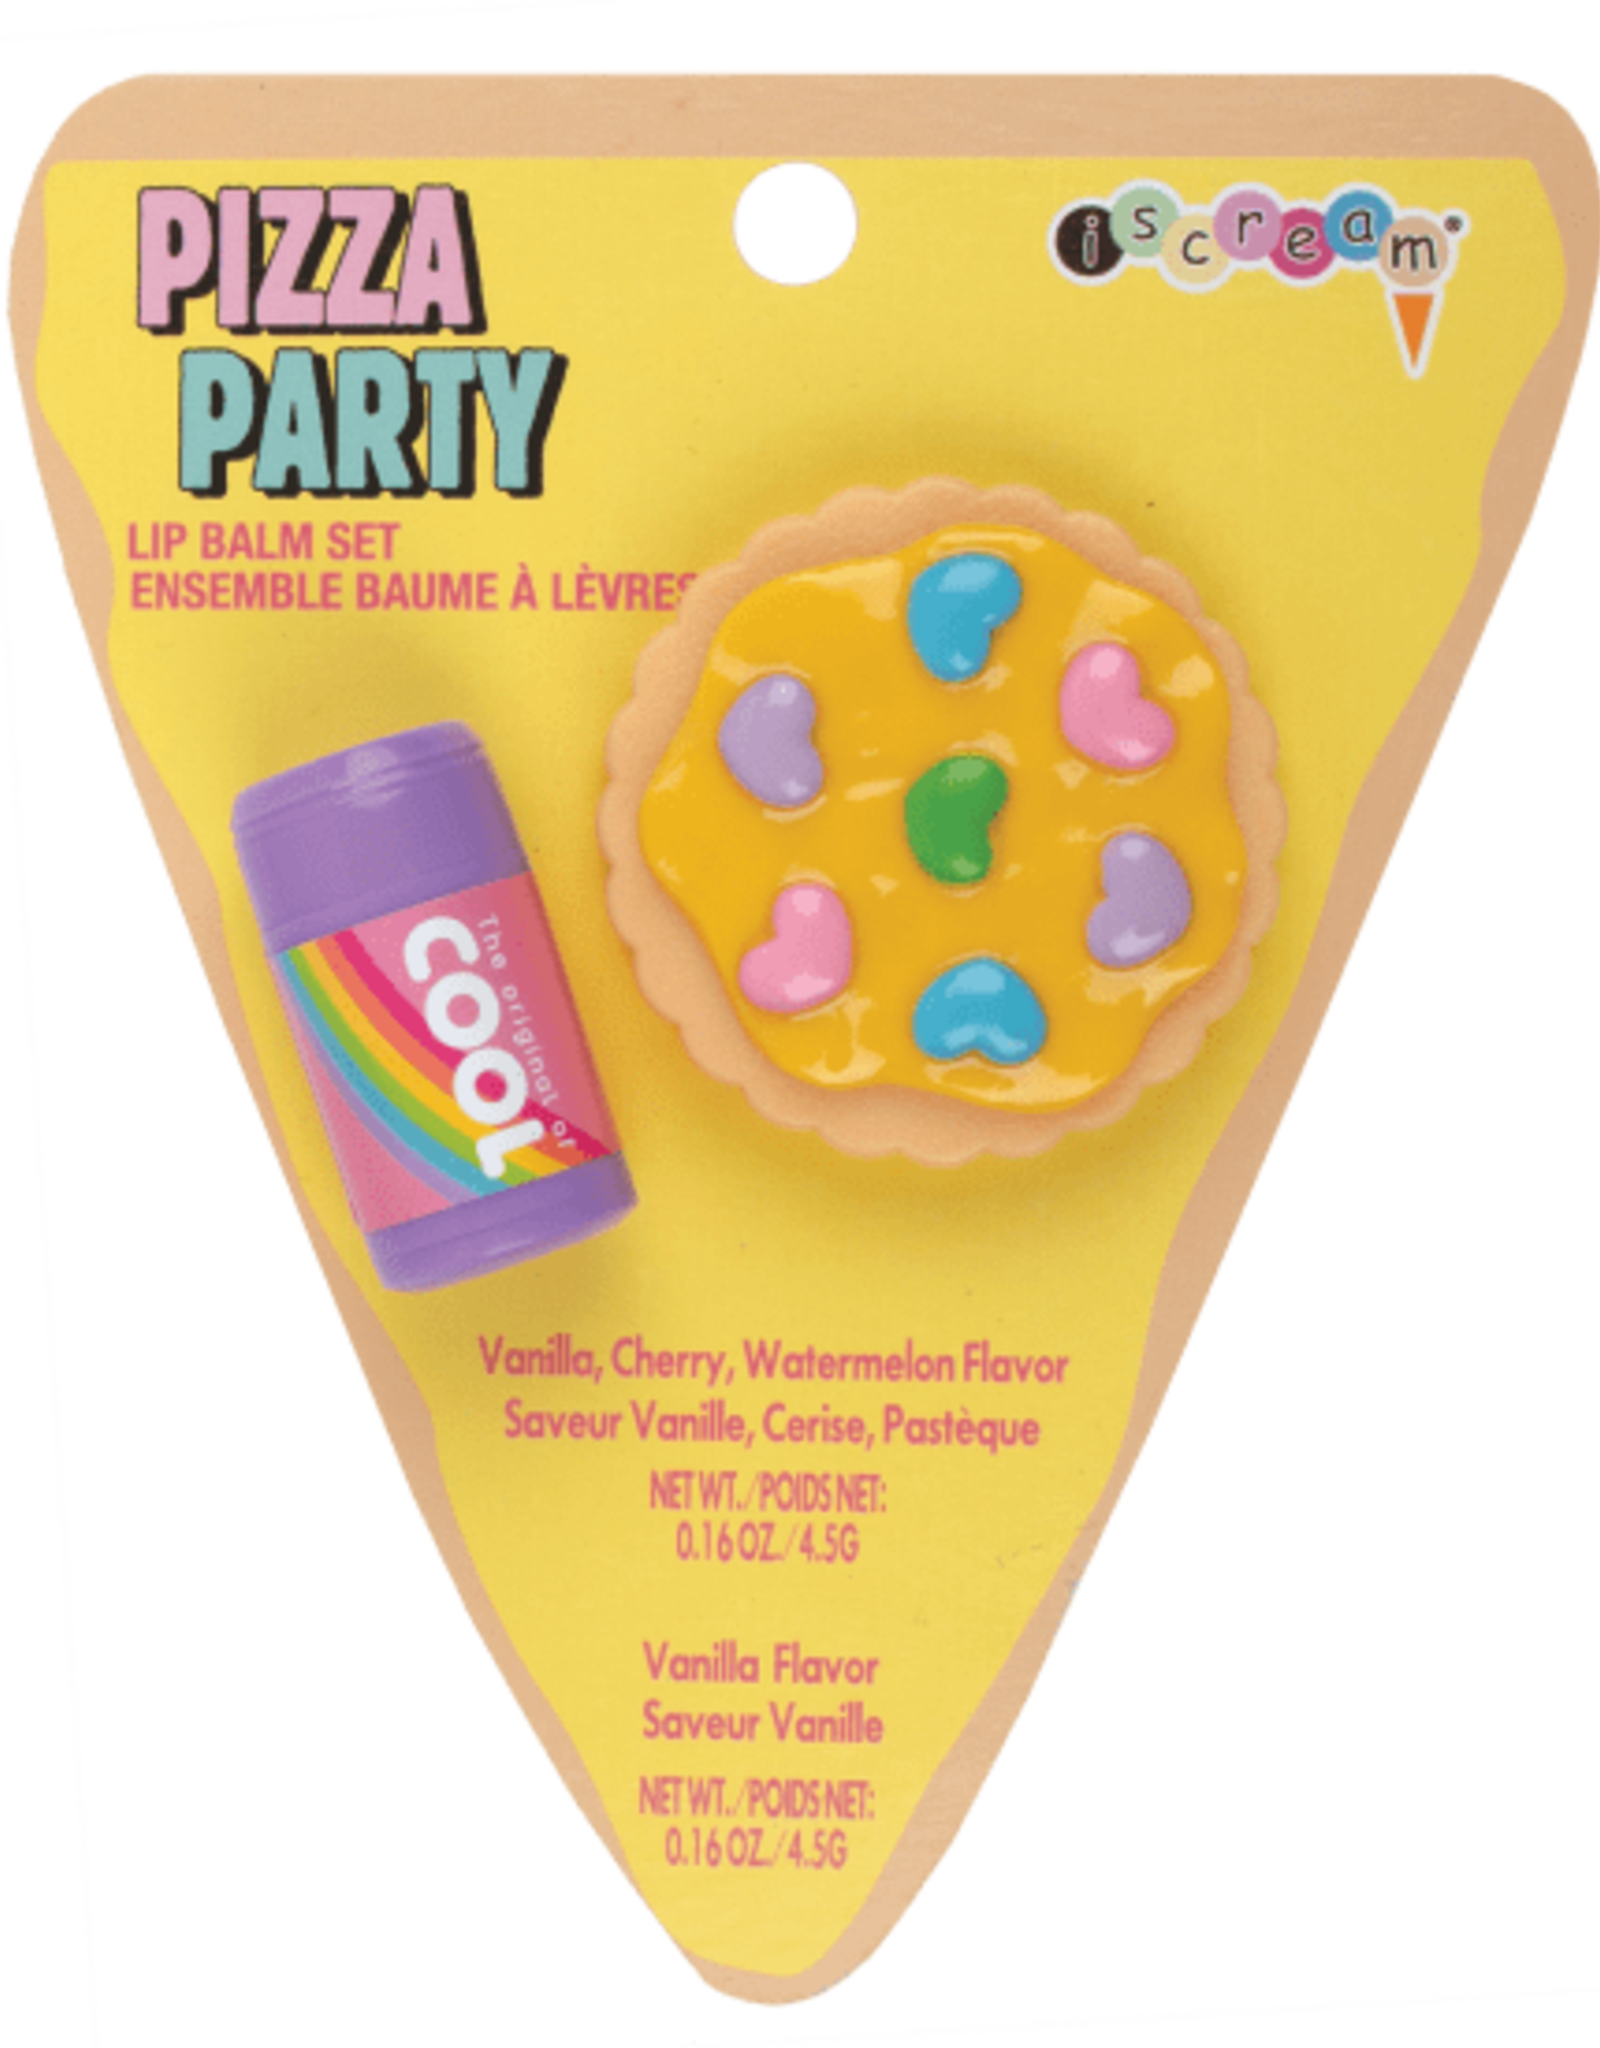 Iscream Pizza Party Lip Balm Set